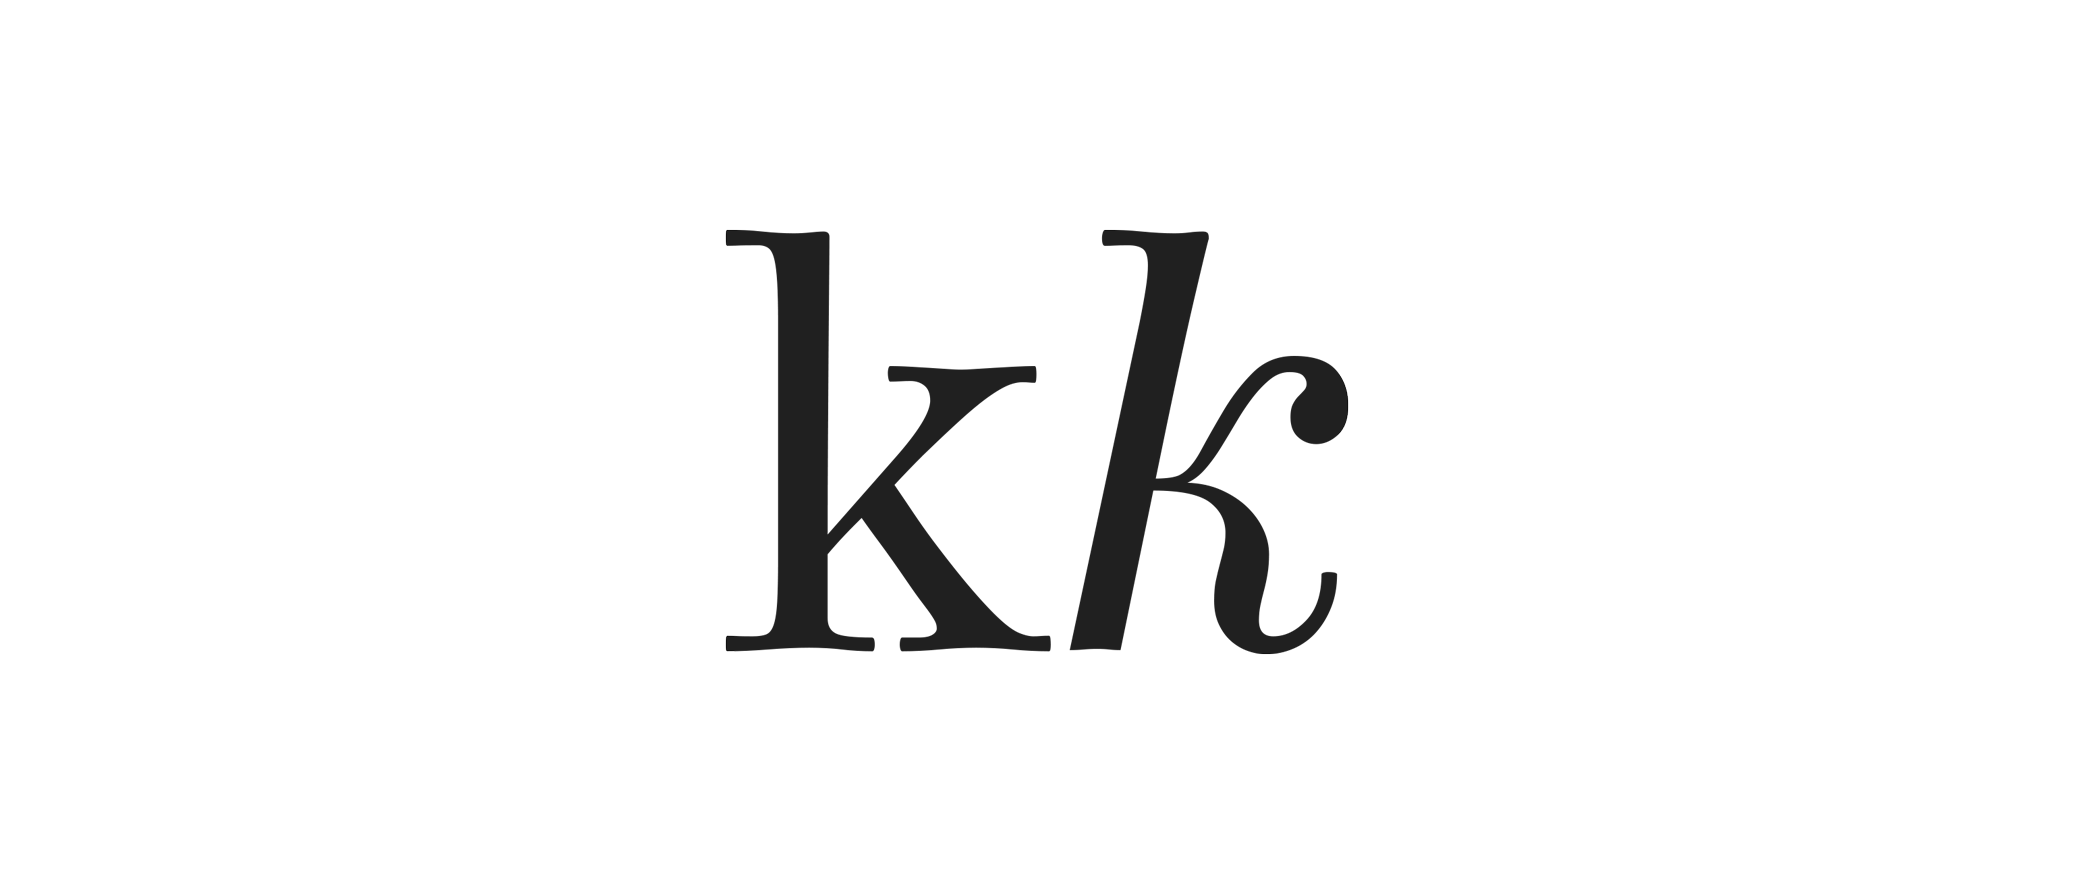 Transparent k different font. Hercules review journal the